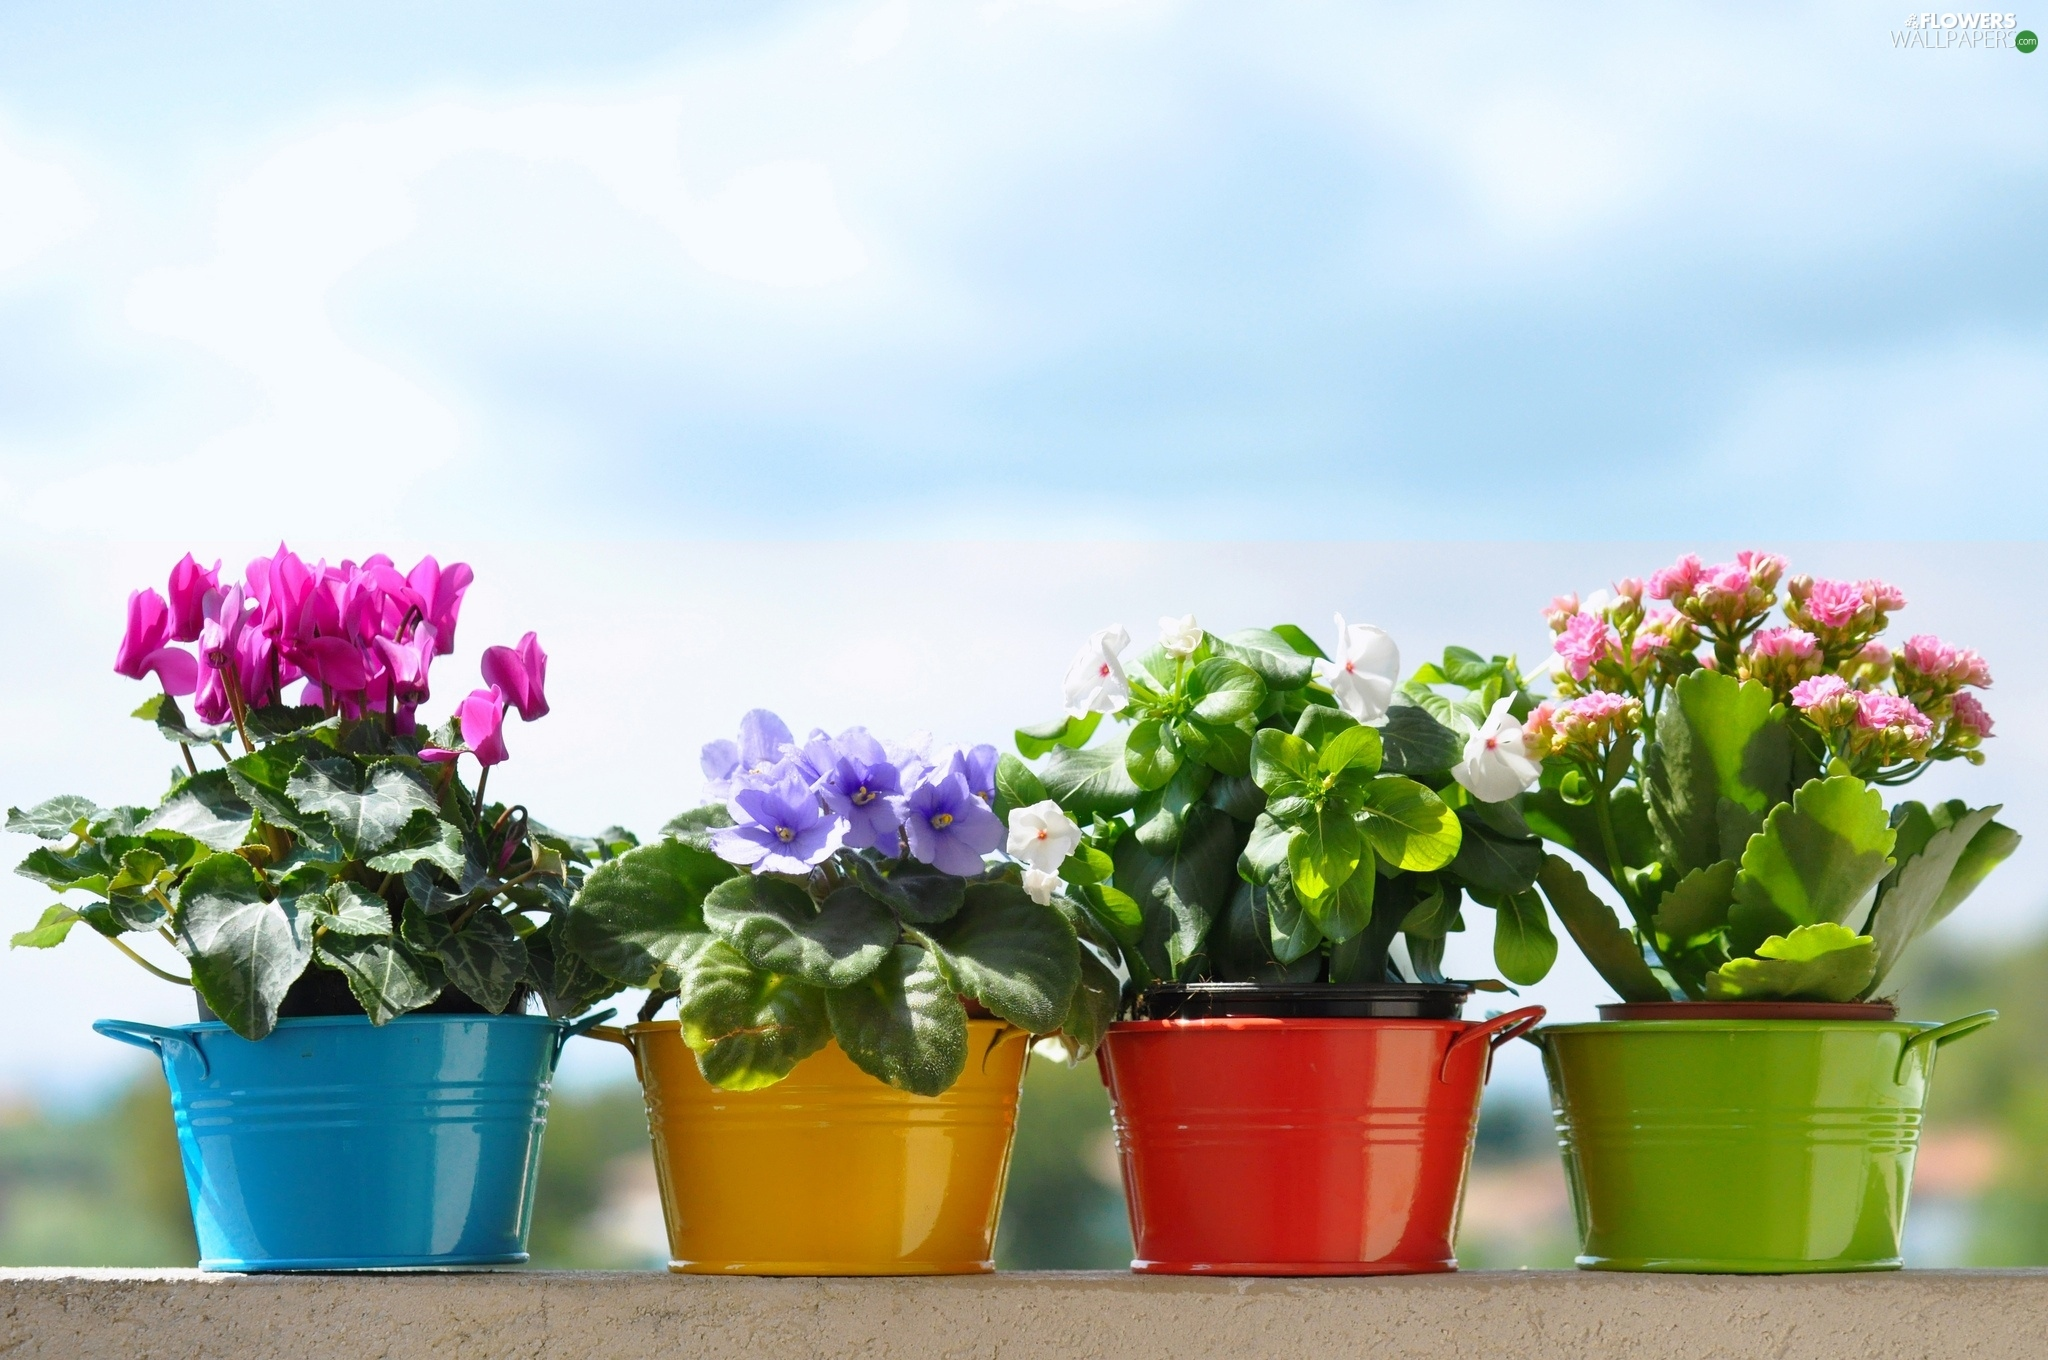 Flowers, color, Buckets, potted